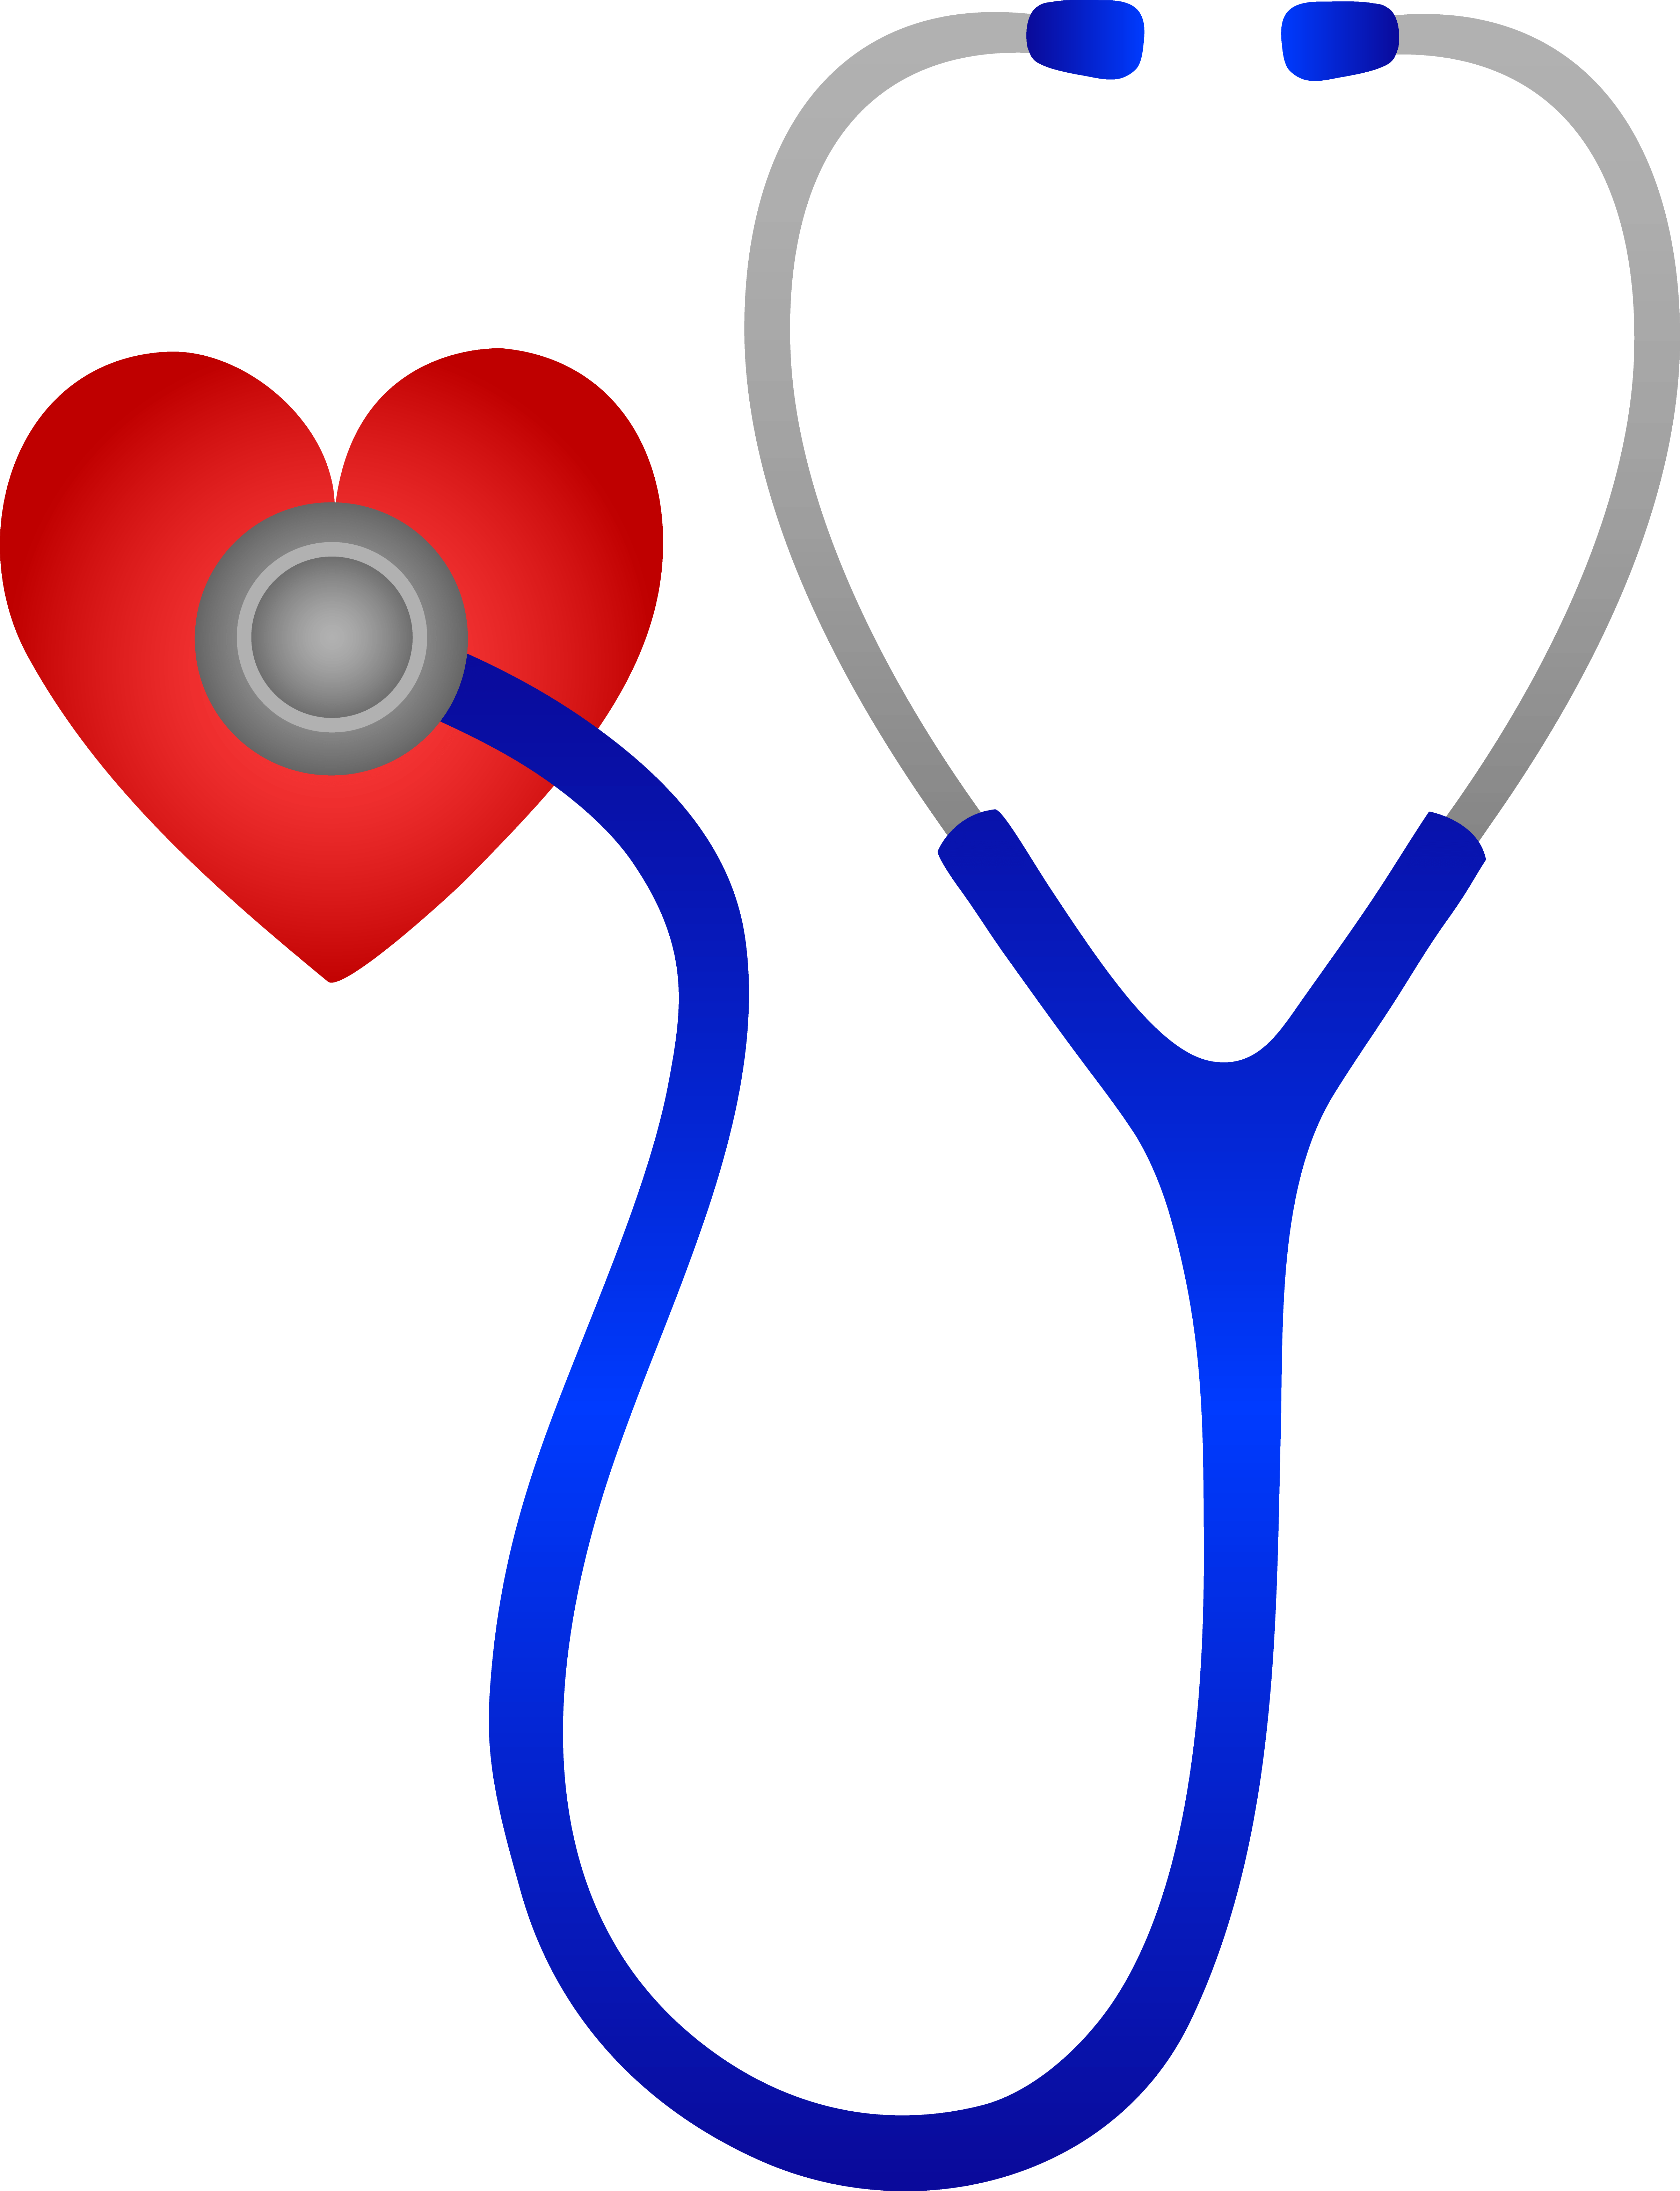 Free cross and heart clipart clipart free stock Hospital Heart Cliparts Free collection | Download and share ... clipart free stock